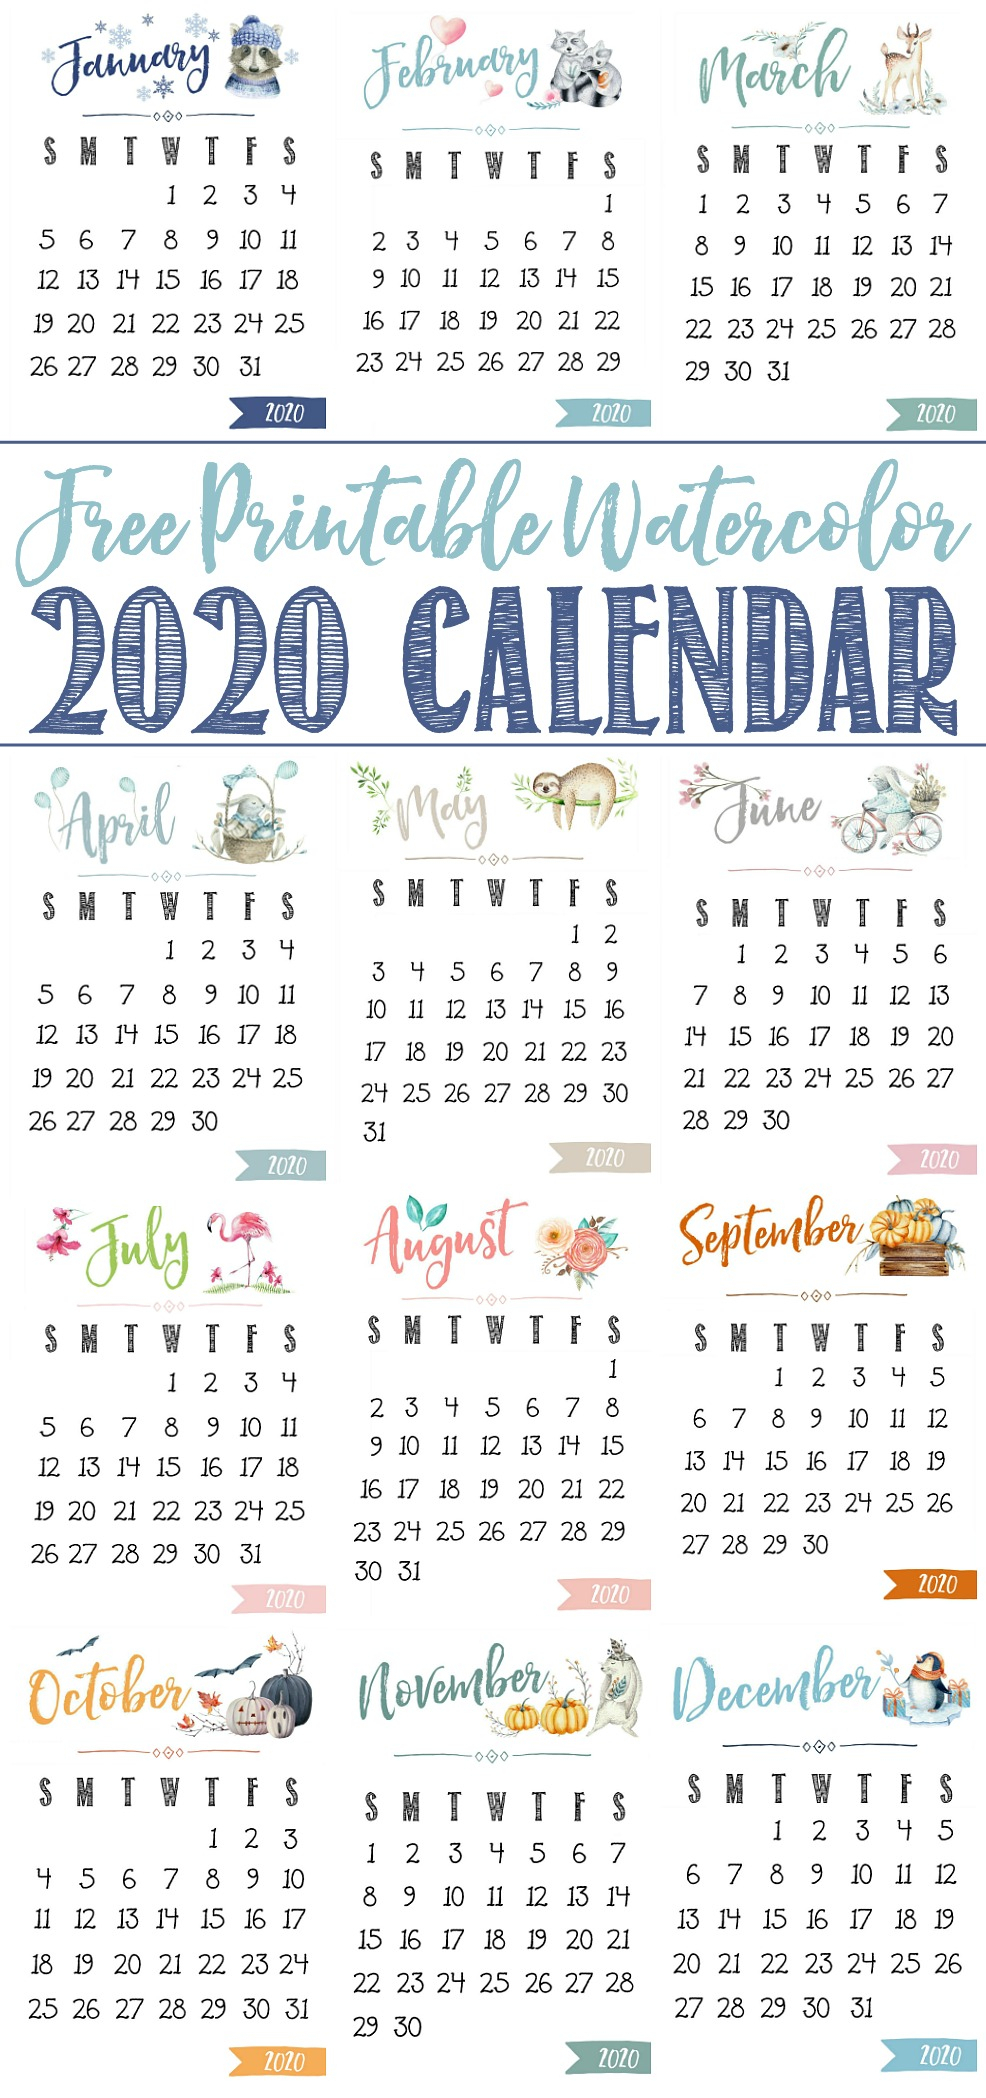 Free Printable 2020 Calendar - Clean And Scentsible